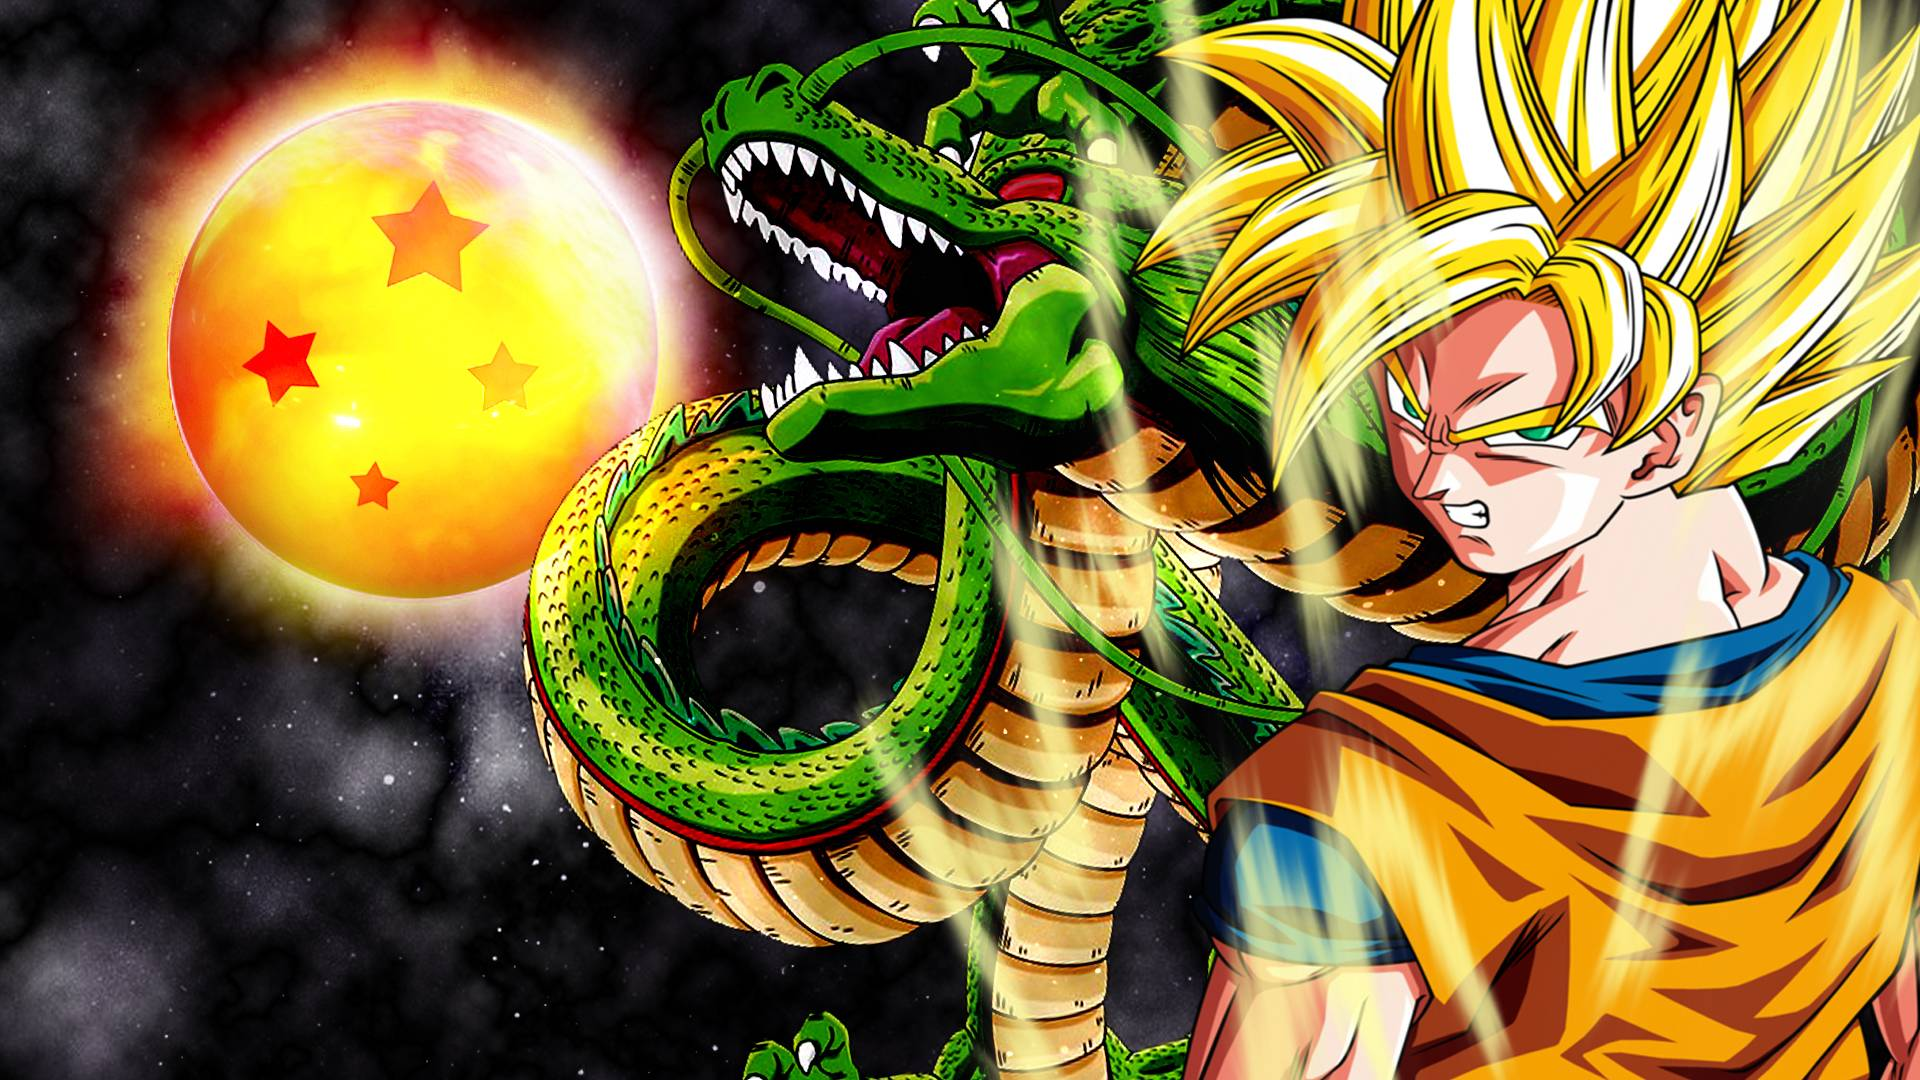 Dragon Ball Z HD Wallpapers 1920x1080